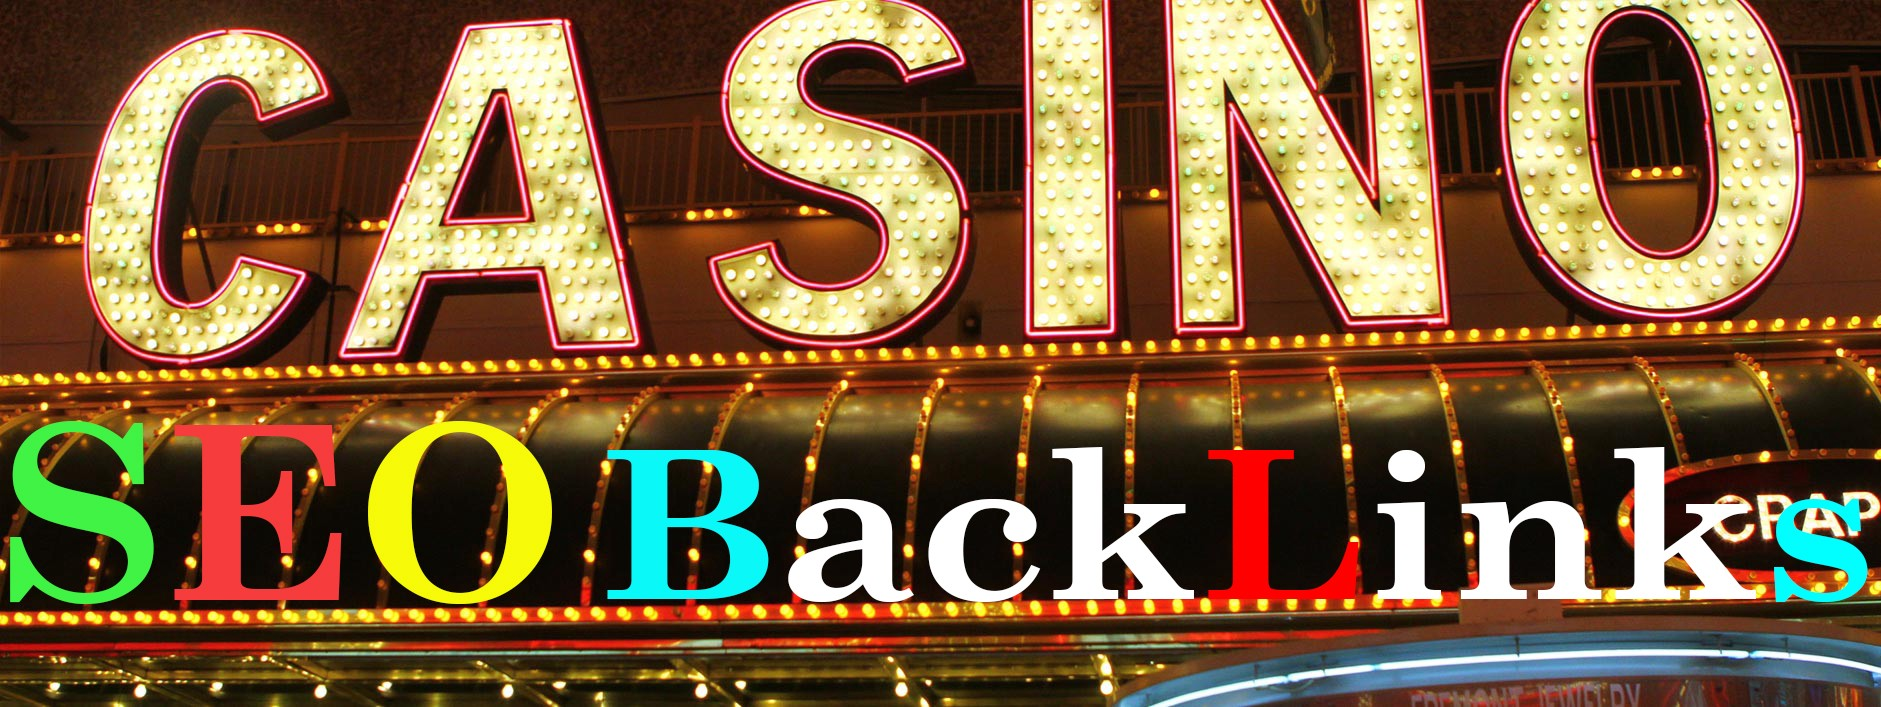 GET 150+ PRIMIUM Casino PBN Backlink homepage web 2.0 with HIGH DA/PA/CF/TF WITH UNIQUE WEBSITE